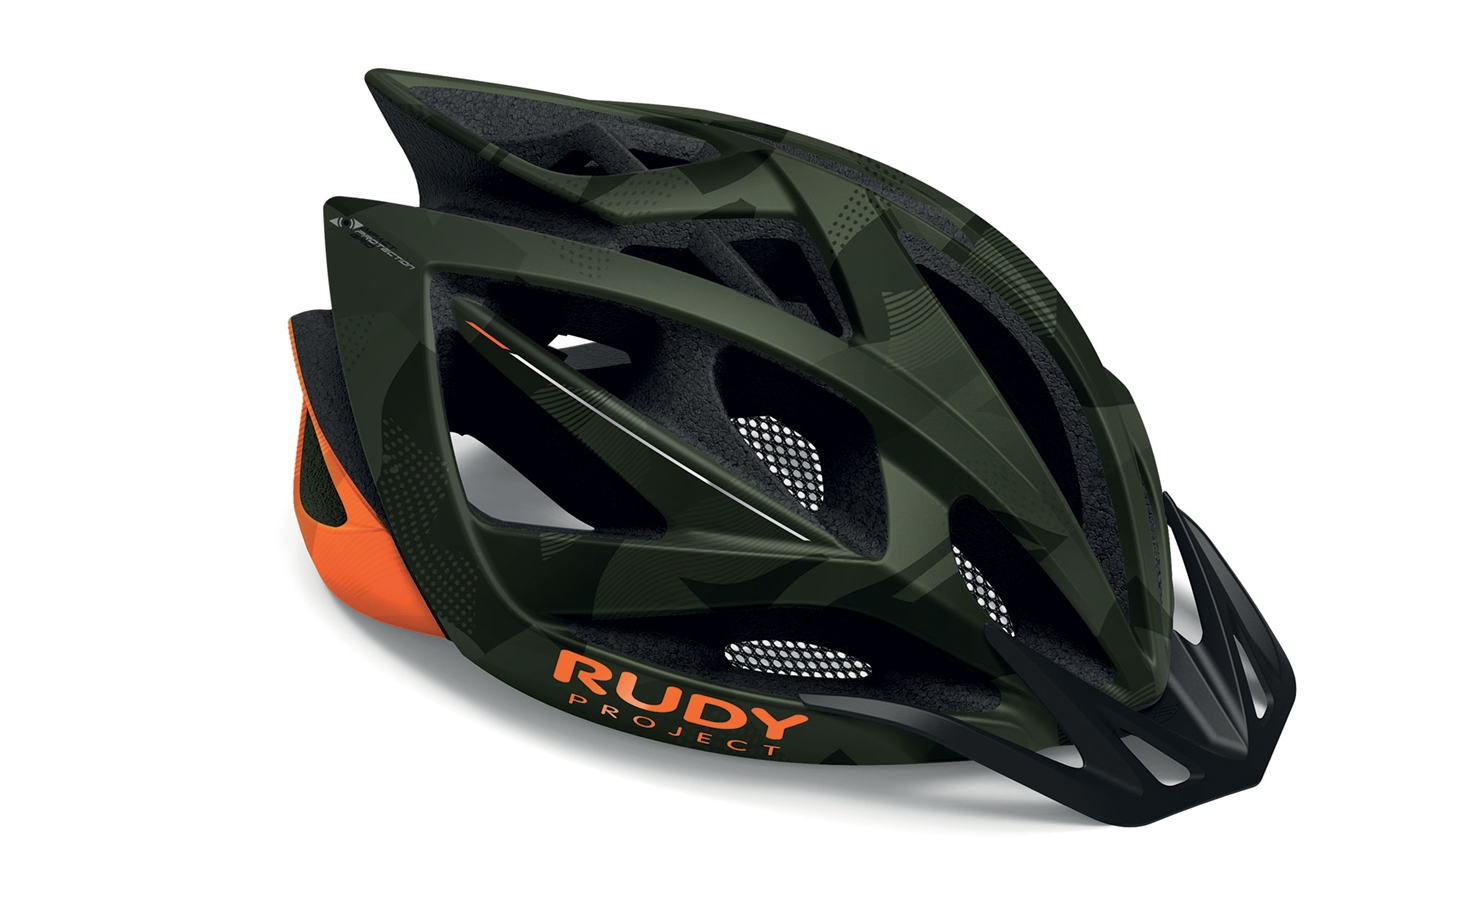 Glasses And Sports Helmets Rudy Project Toolkit Sepeda 11 In 1 Hitam Airstorm Mtb